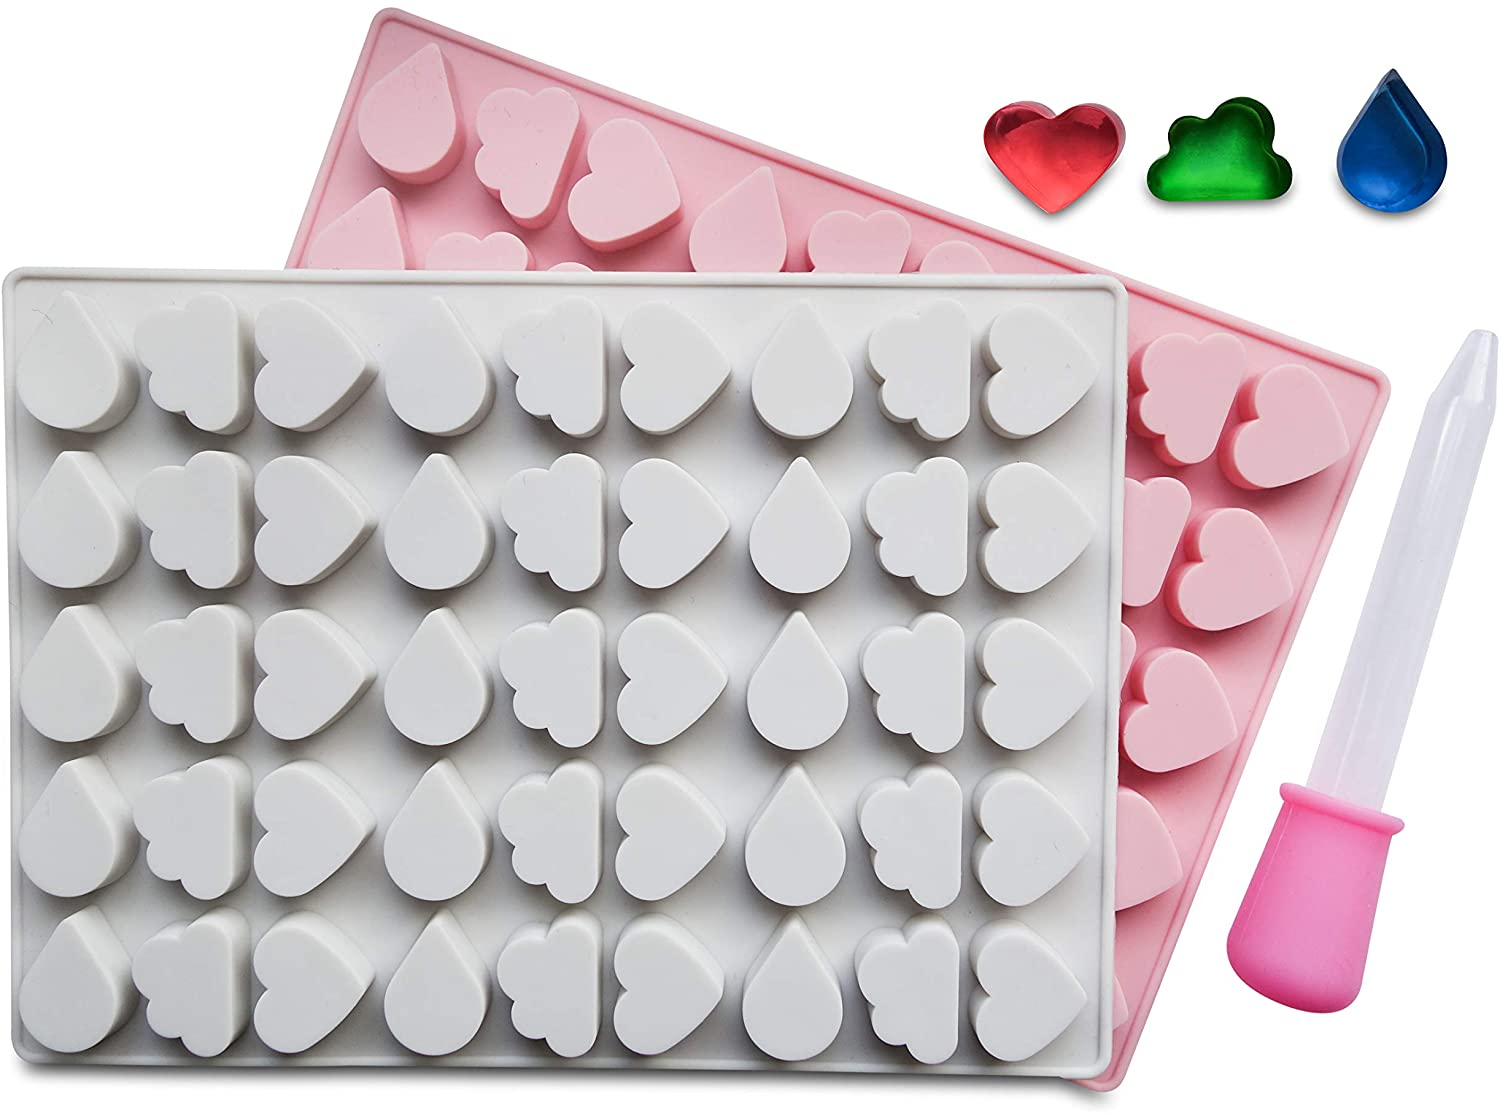 45 Cavity Heart, Cloud & Water Drops Silicone Candy Jelly Chocolate Mold Cake Tool - Divena In